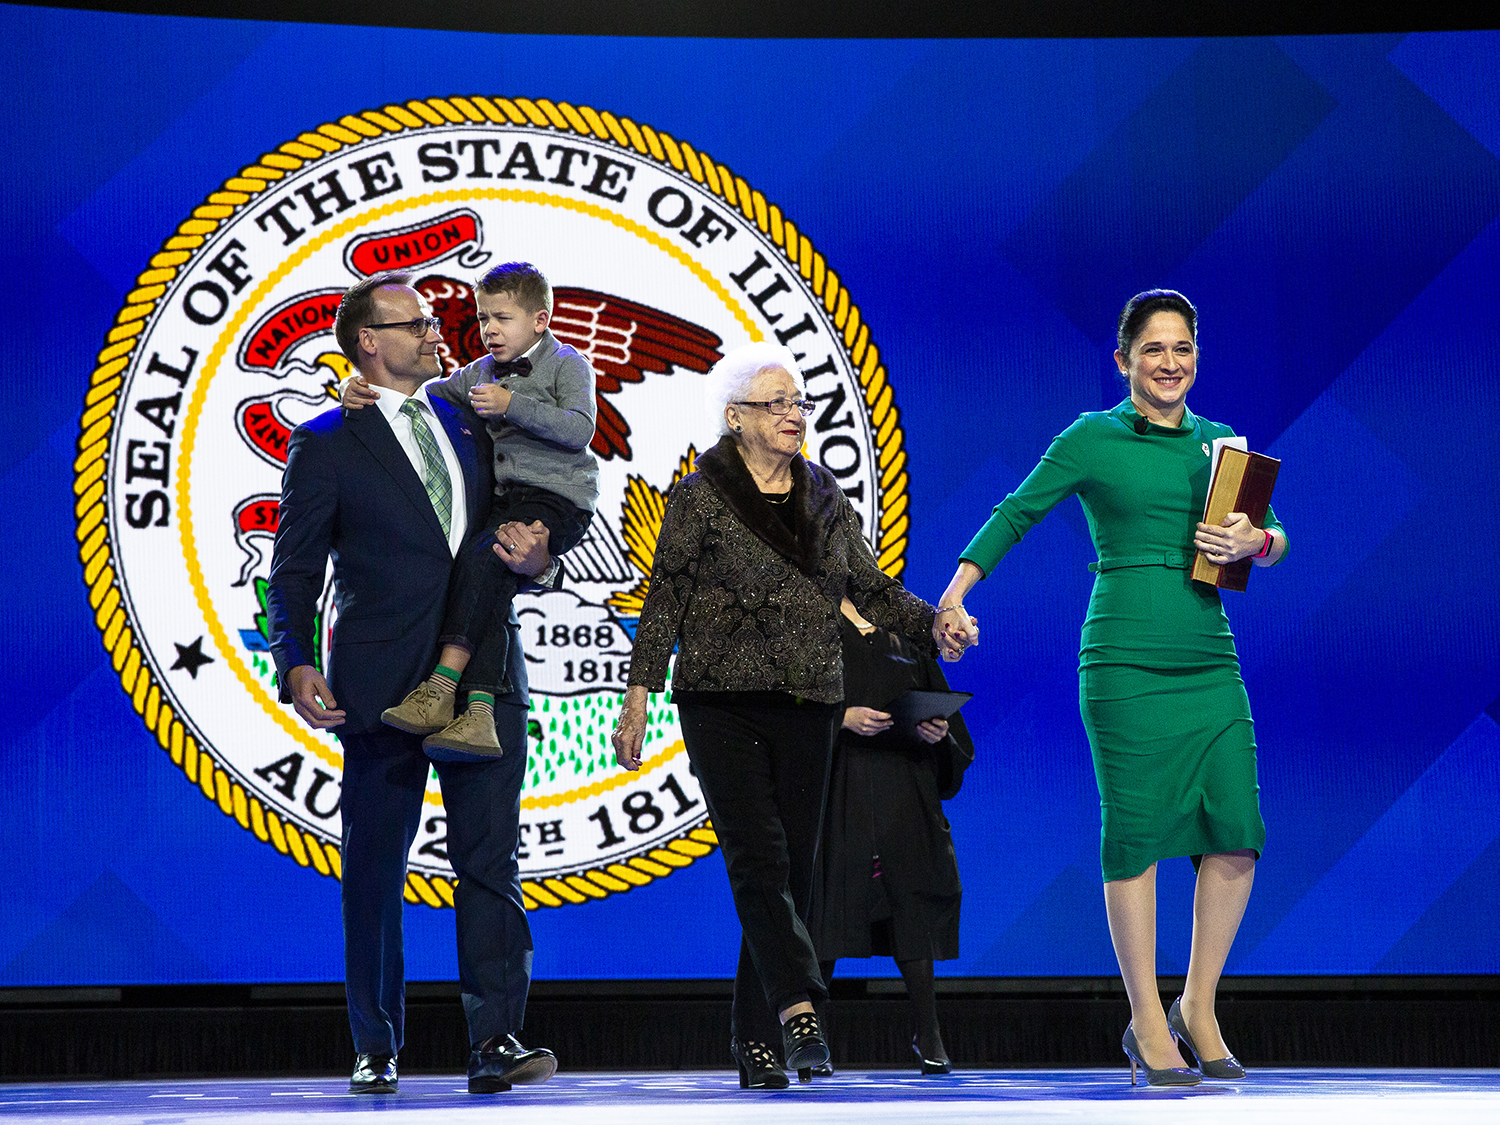 Comptroller Susana Mendoza walks onto the stage with her mother, Susana H. Mendoza, husband, David Szostak, and their son, David, before taking the oath at the Illinois Inaugural Ceremony Monday, Jan. 14, 2019 a the Bank of Springfield Center in Springfield, Ill. [Rich Saal/The State Journal-Register]